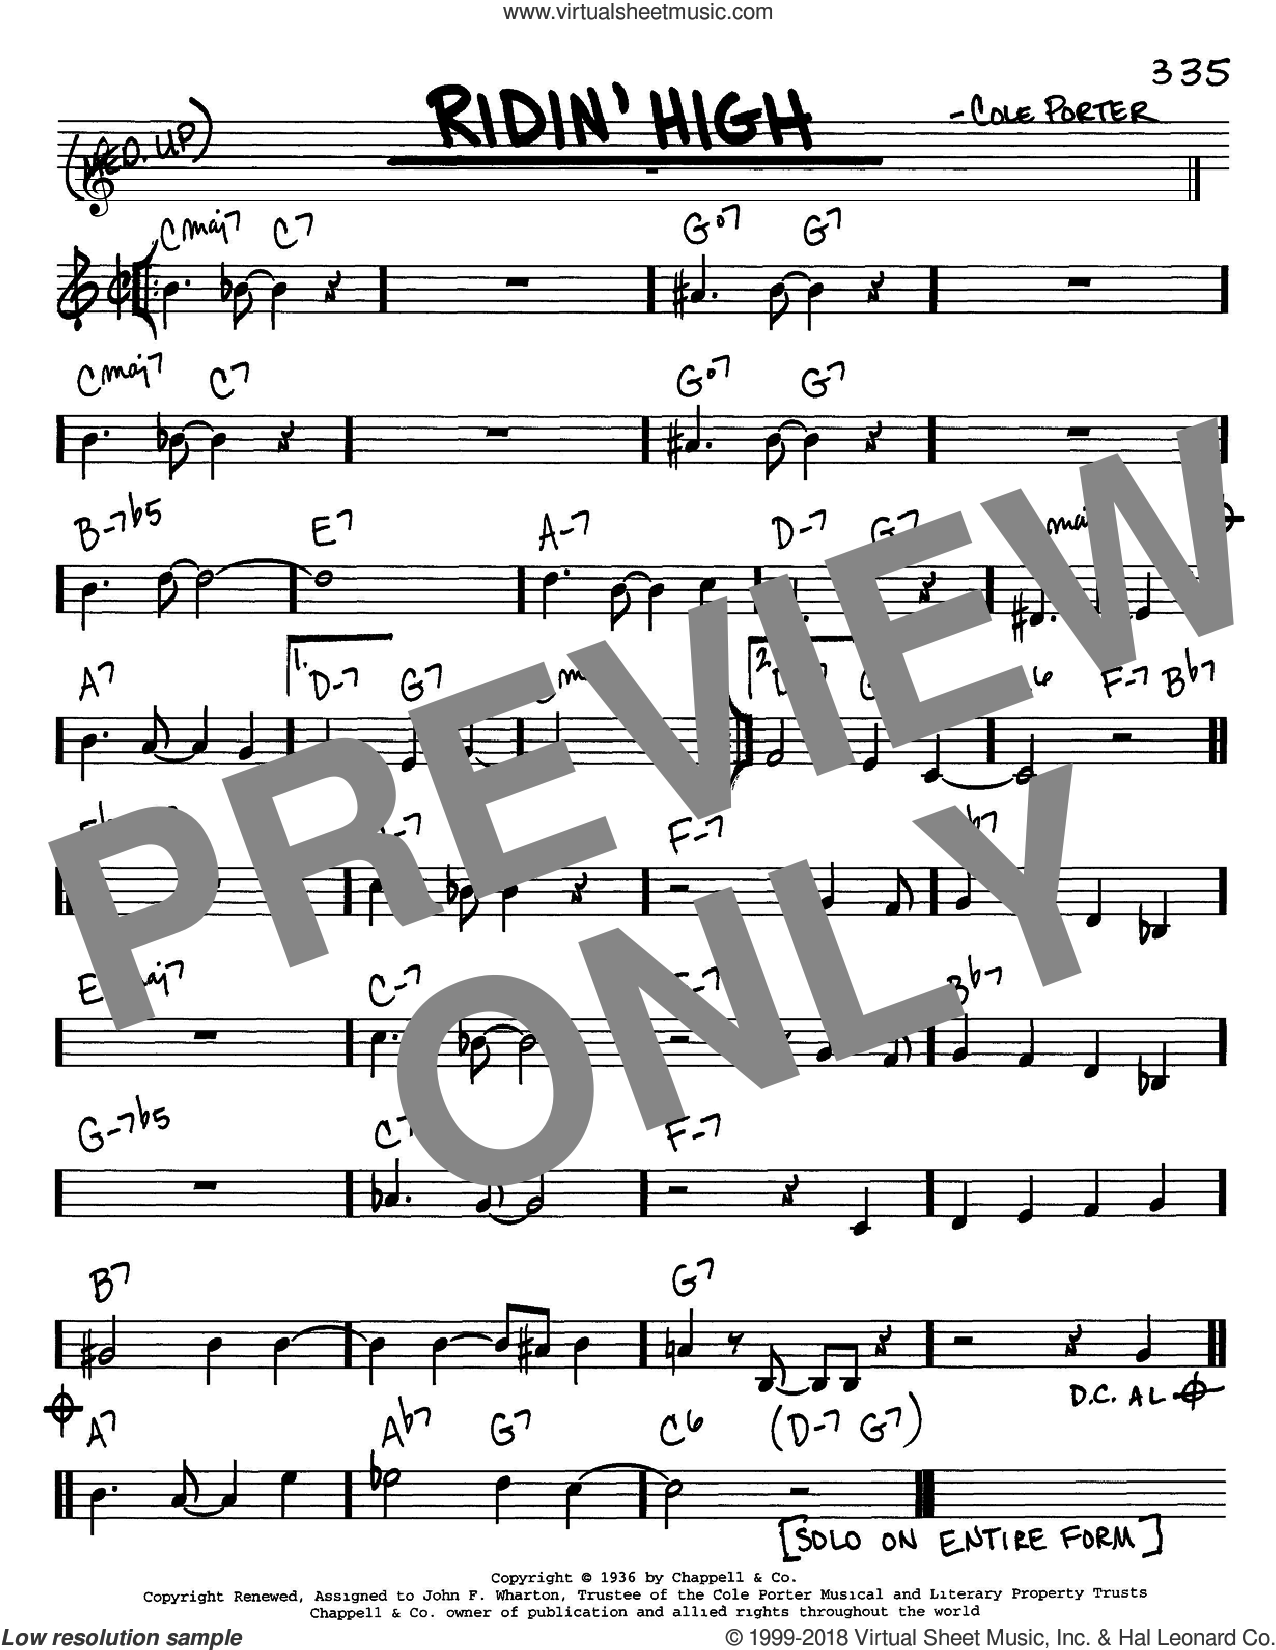 Ridin' High sheet music for voice and other instruments (C) by Cole Porter